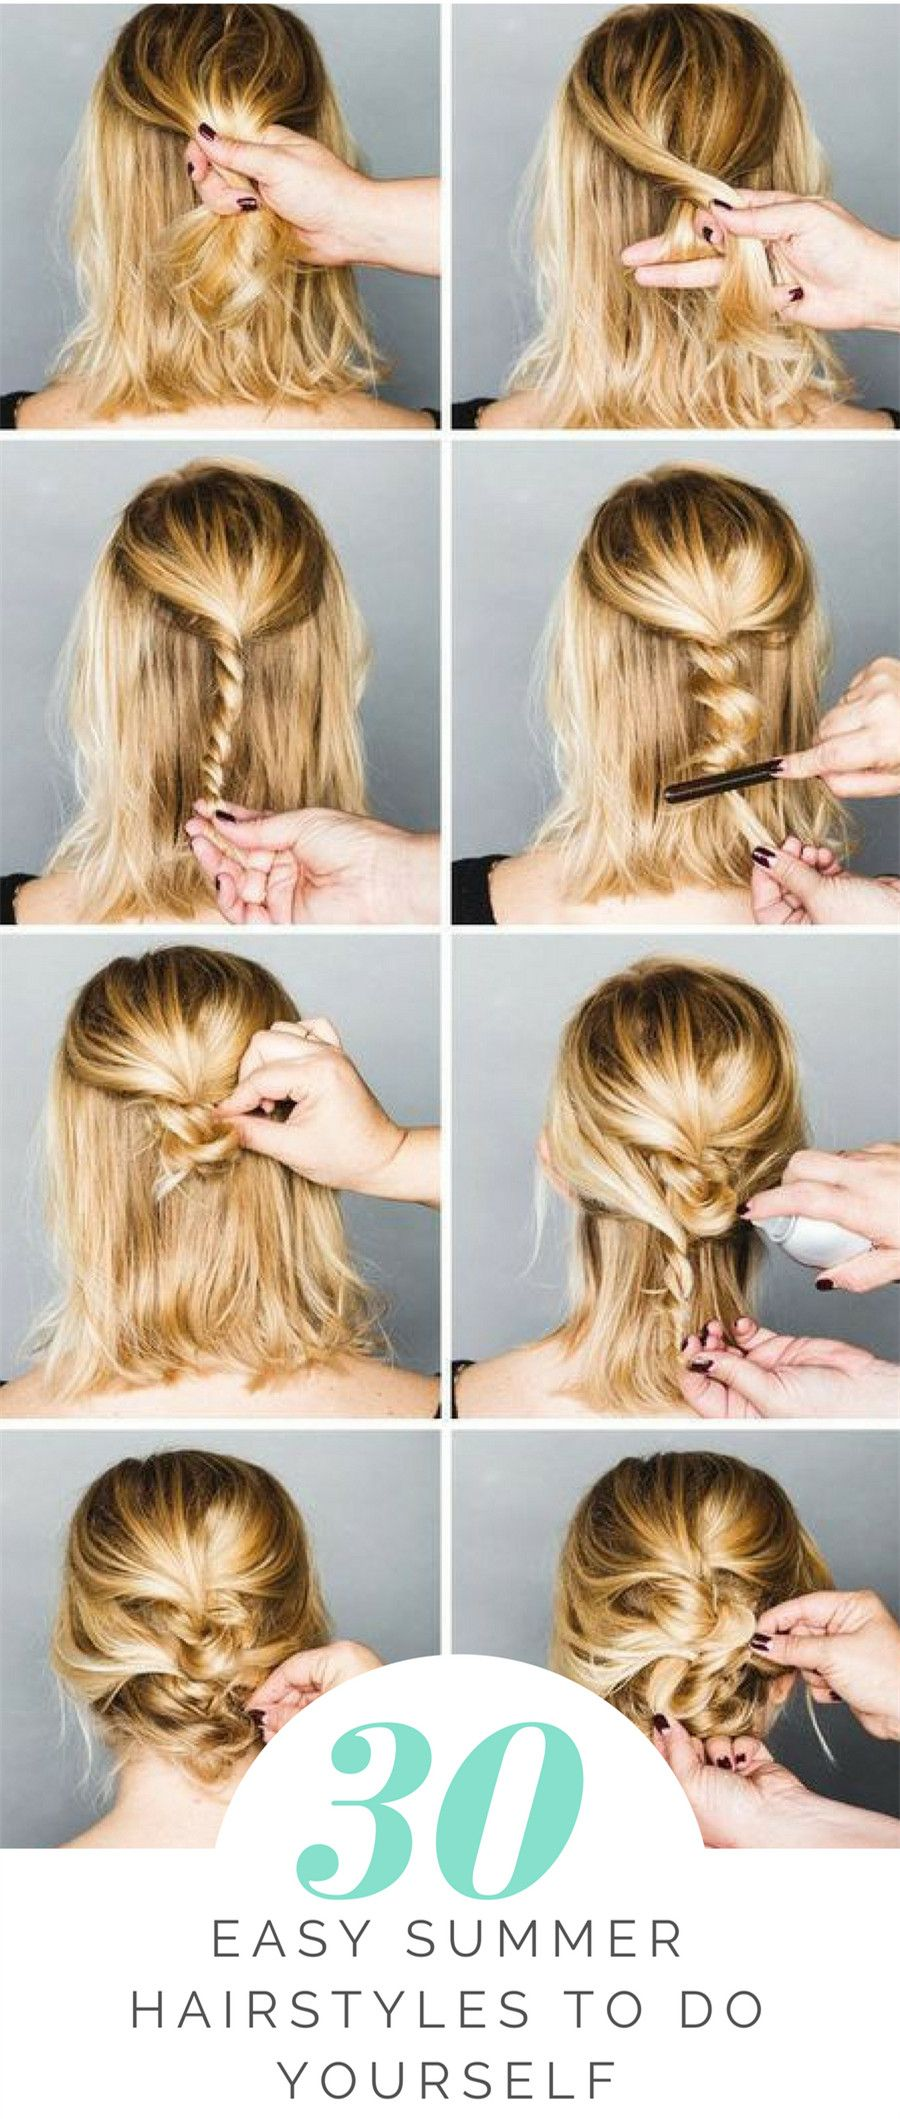 easy summer hairstyles to do yourself beauty pinterest